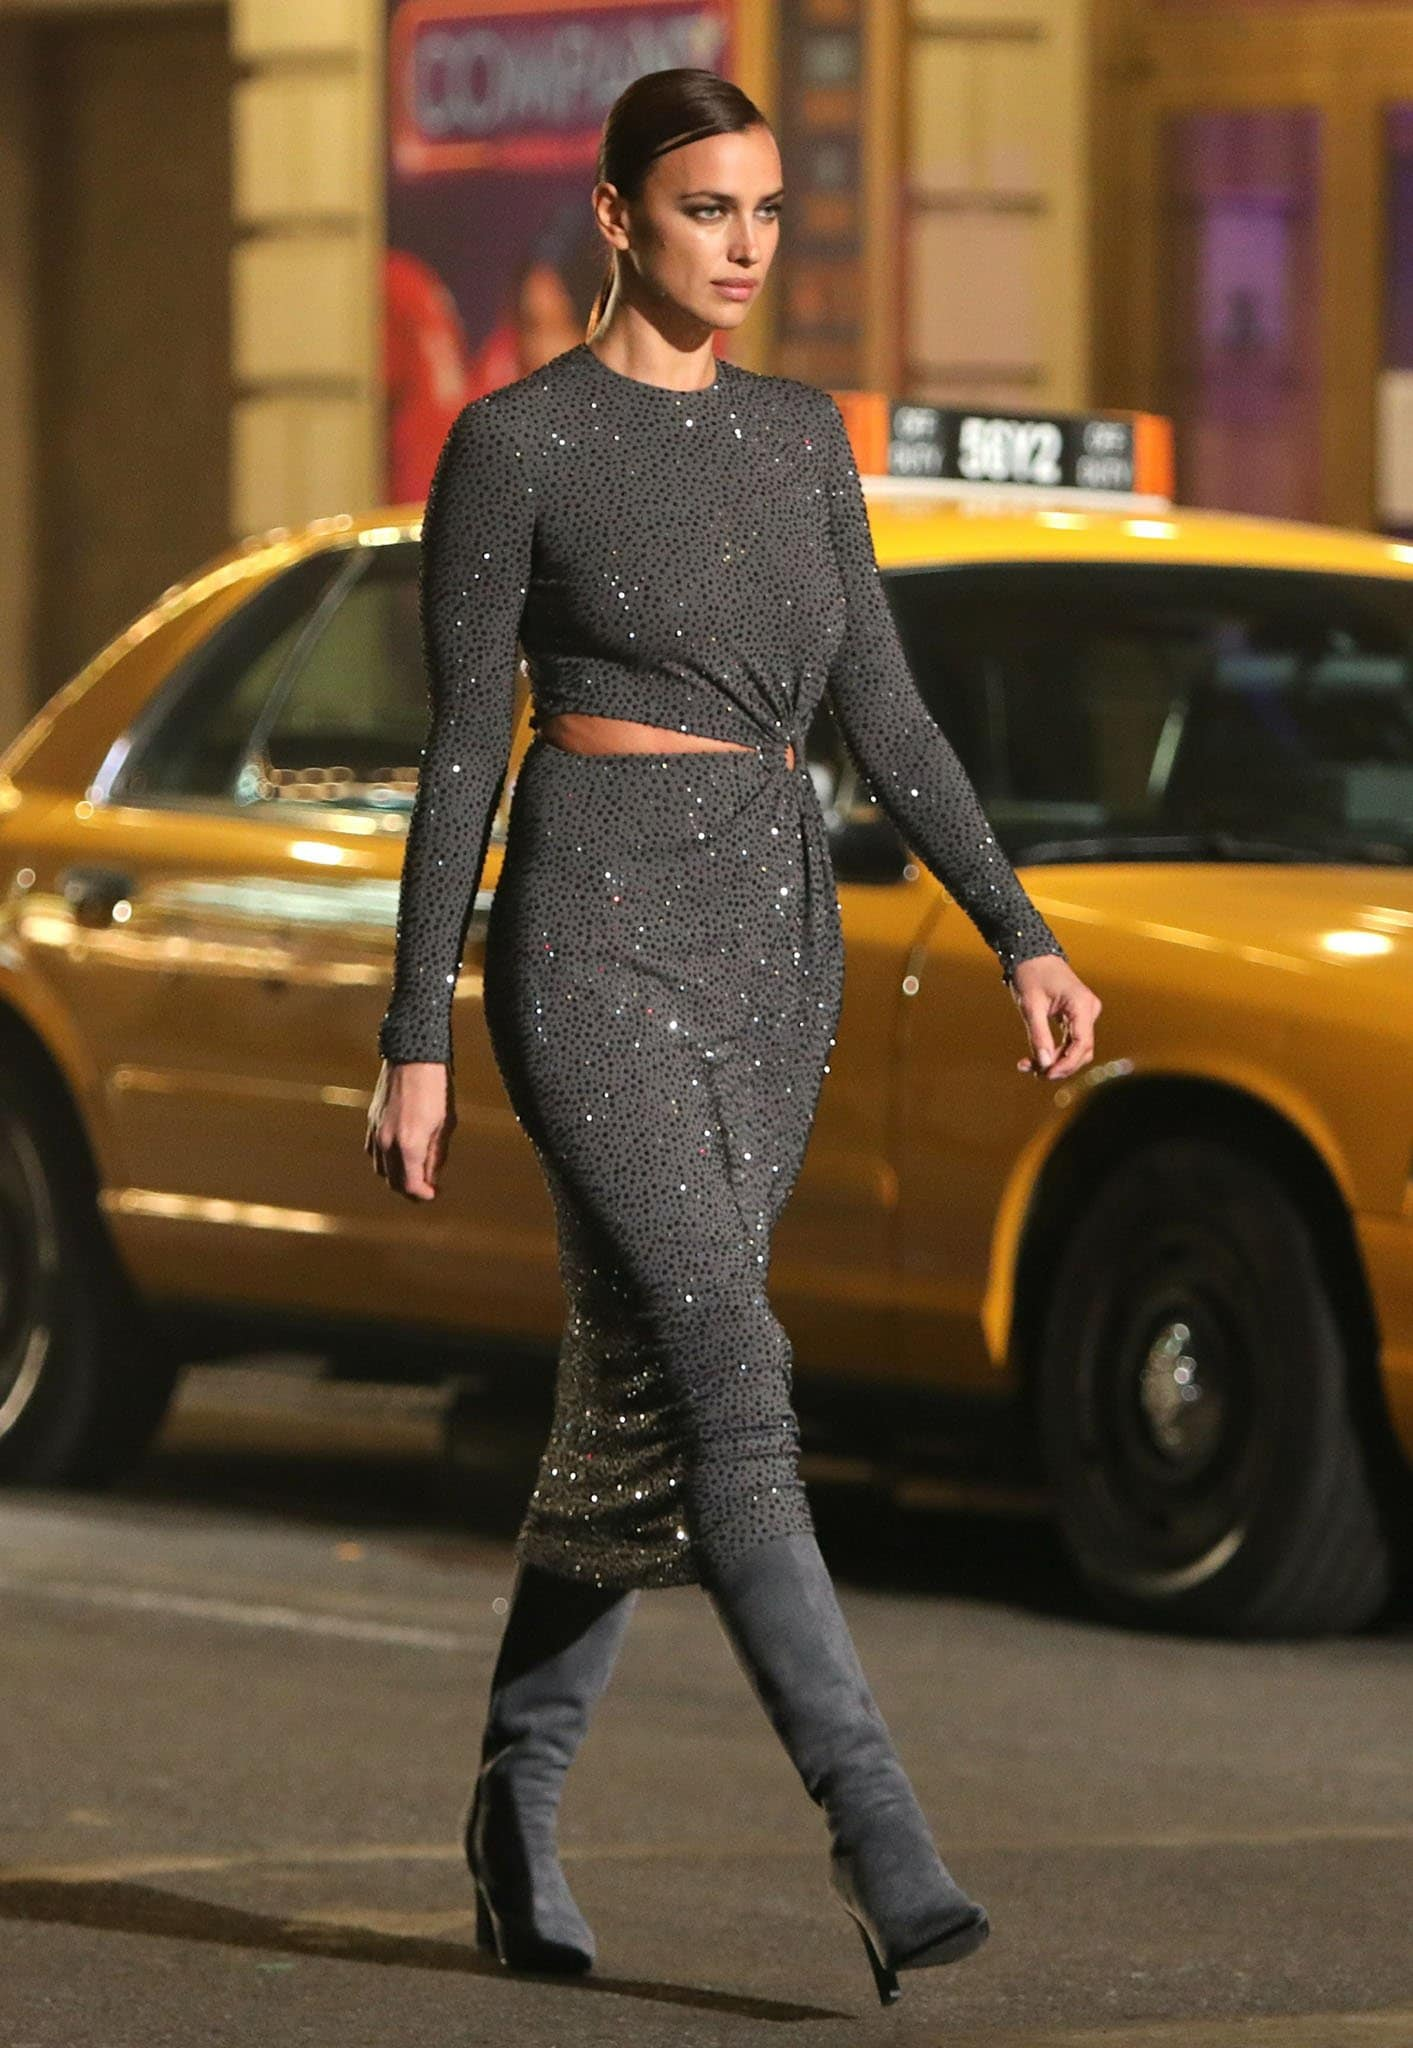 Irina Shayk showcases her model figure in a curve-hugging crystal-embellished dress with knee-high boots